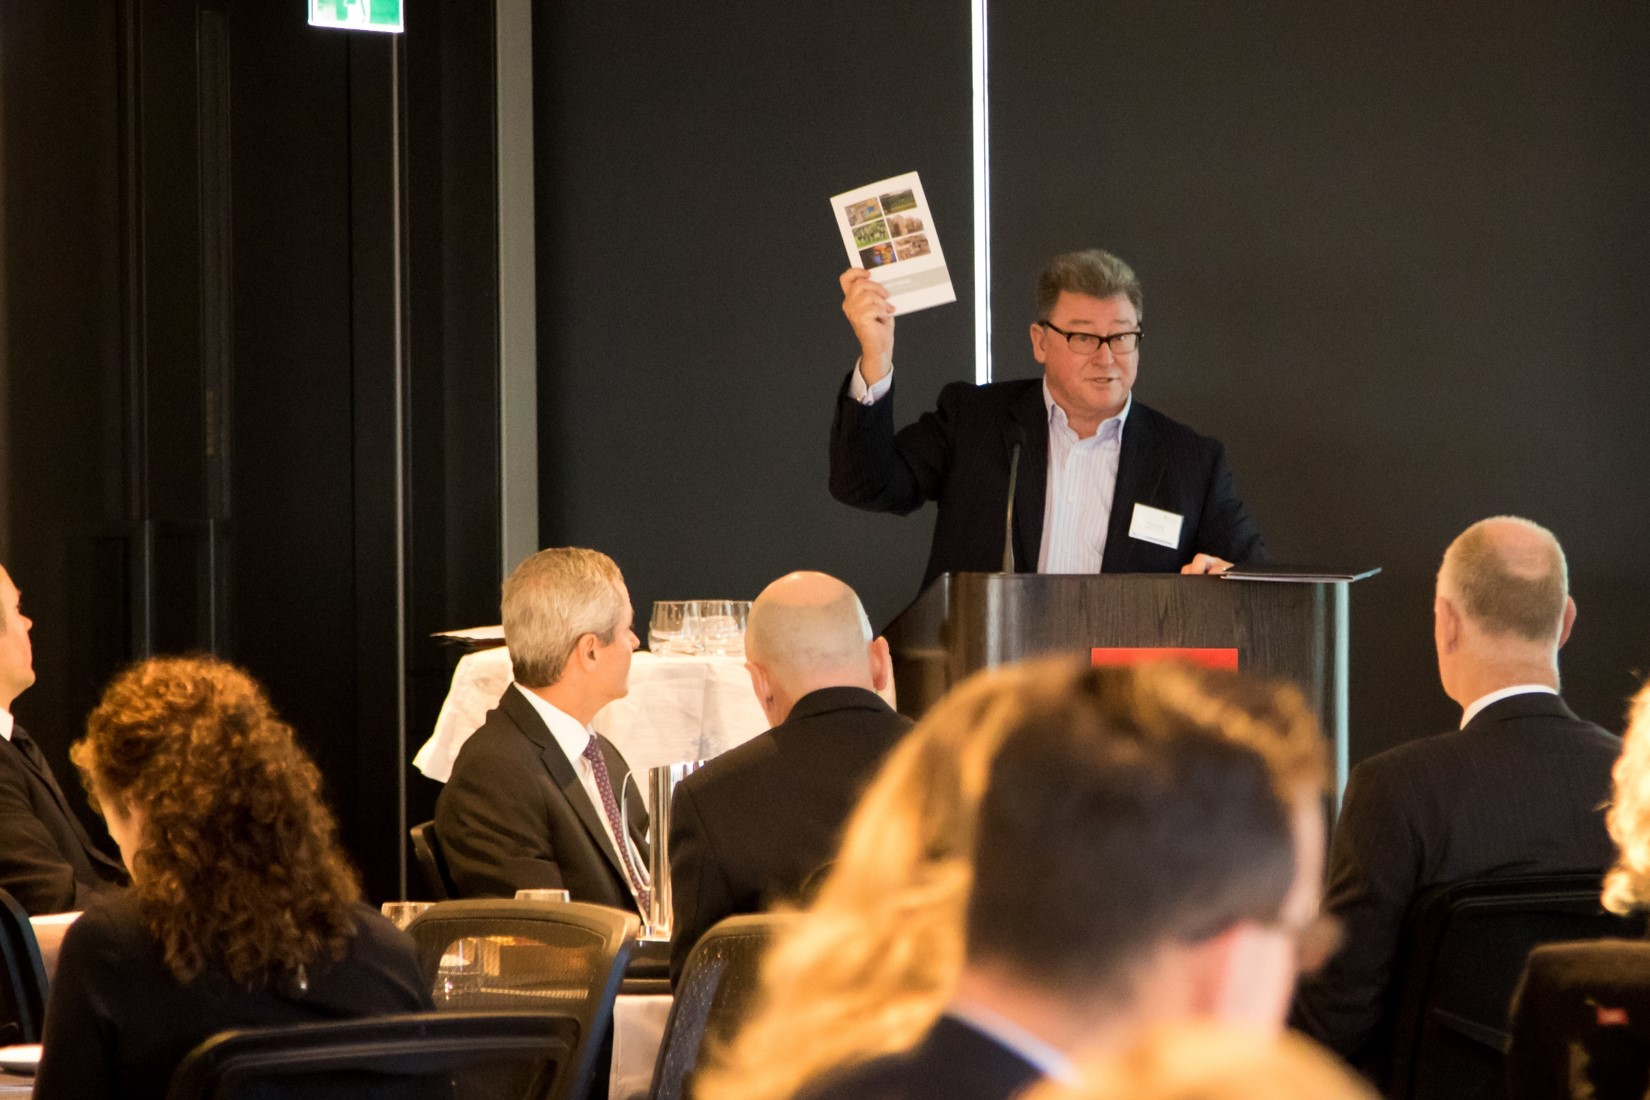 stephen kozicki presenting at the 11th gordian business thought leadership event